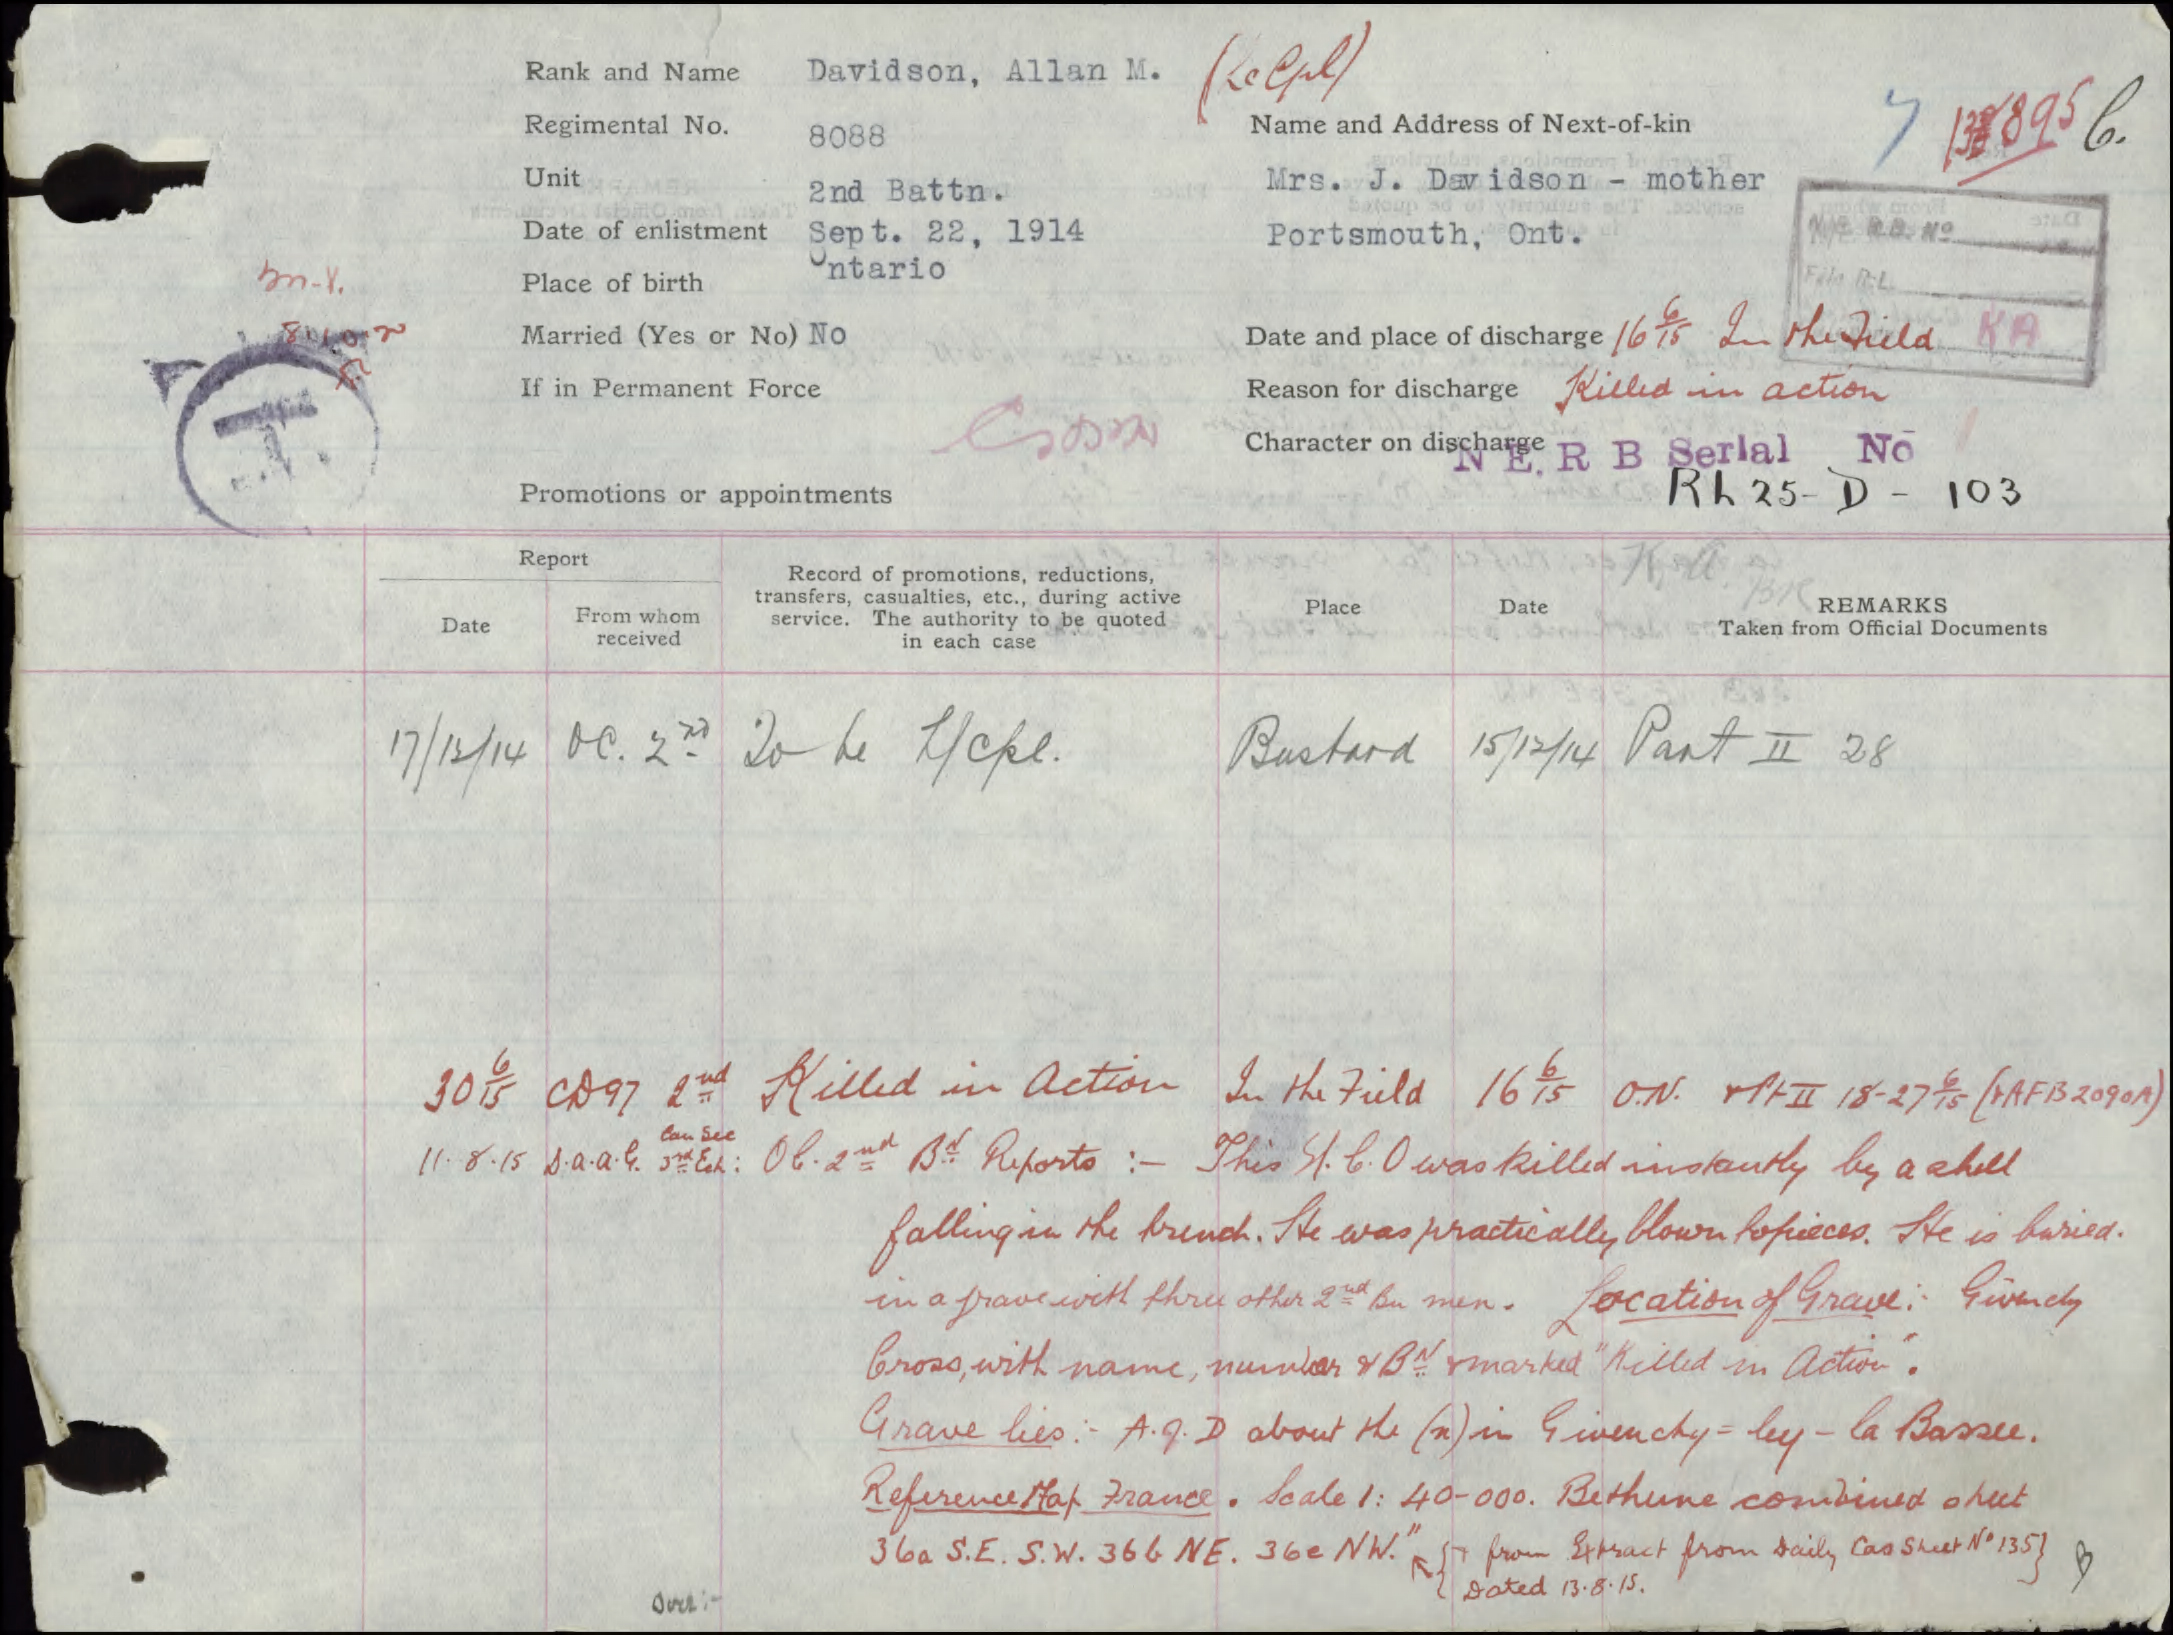 A page from the service file of Scotty Davidson describing how he was killed in action.